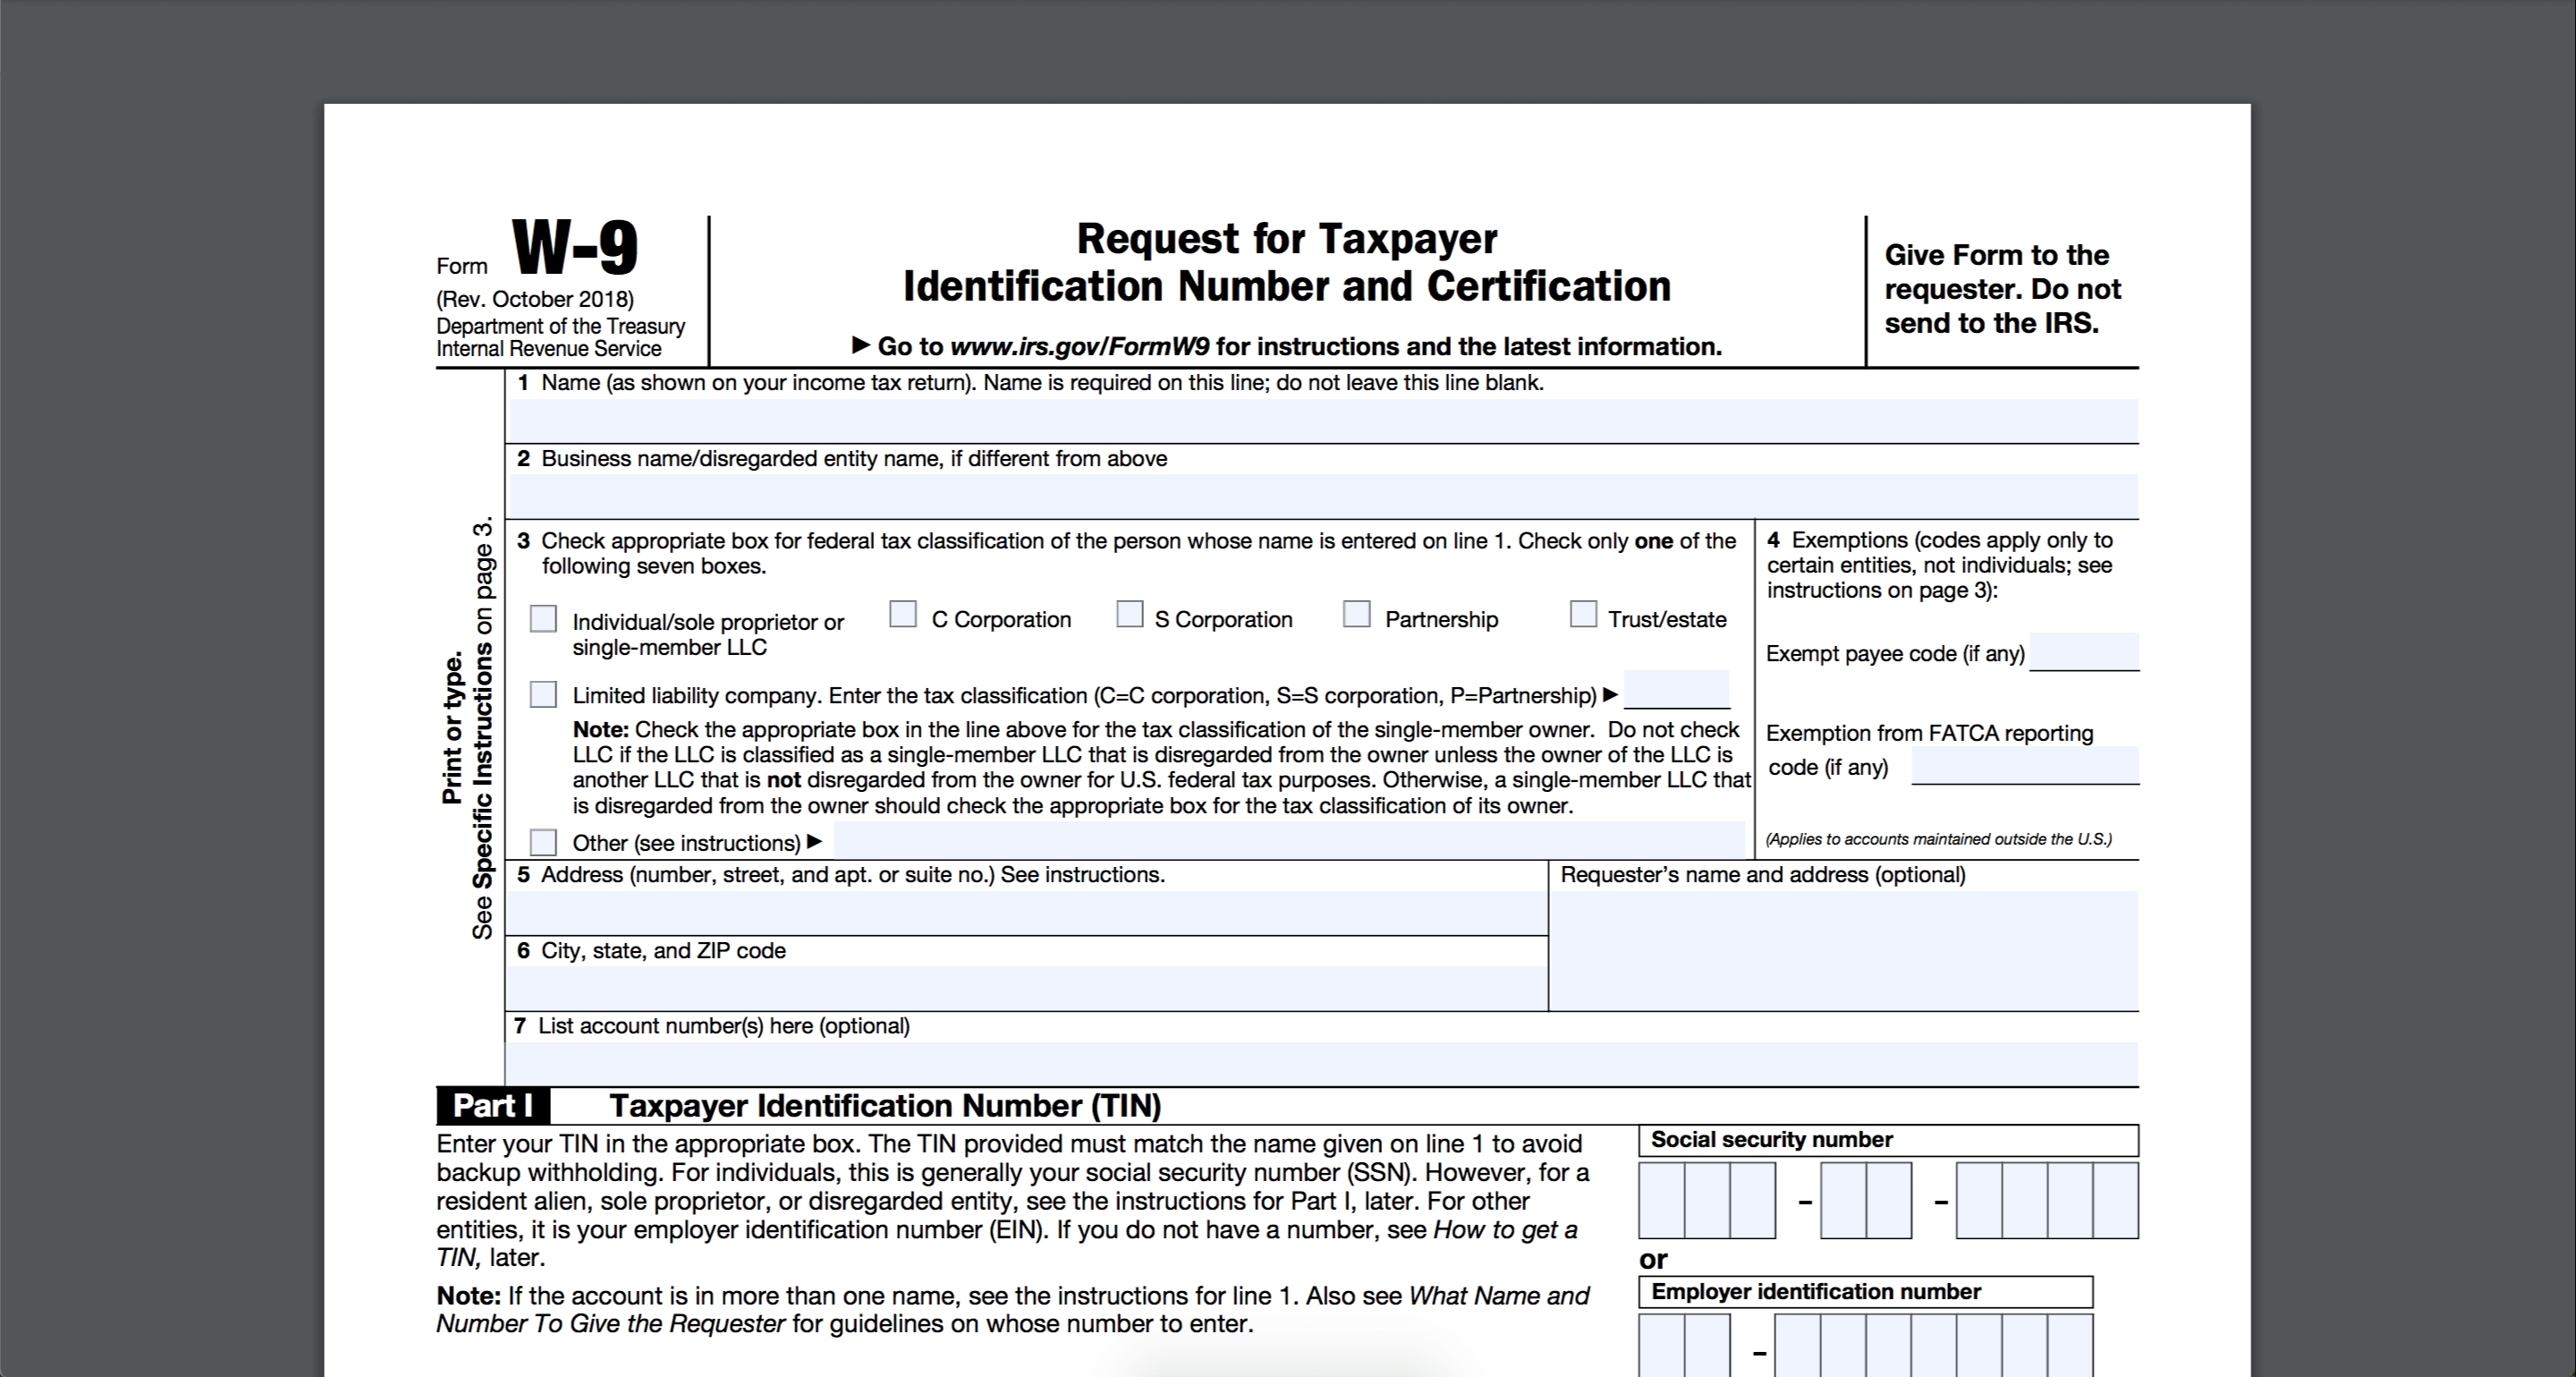 How To Fill Out And Sign Your W-9 Form Online-Blank W 9 To Print